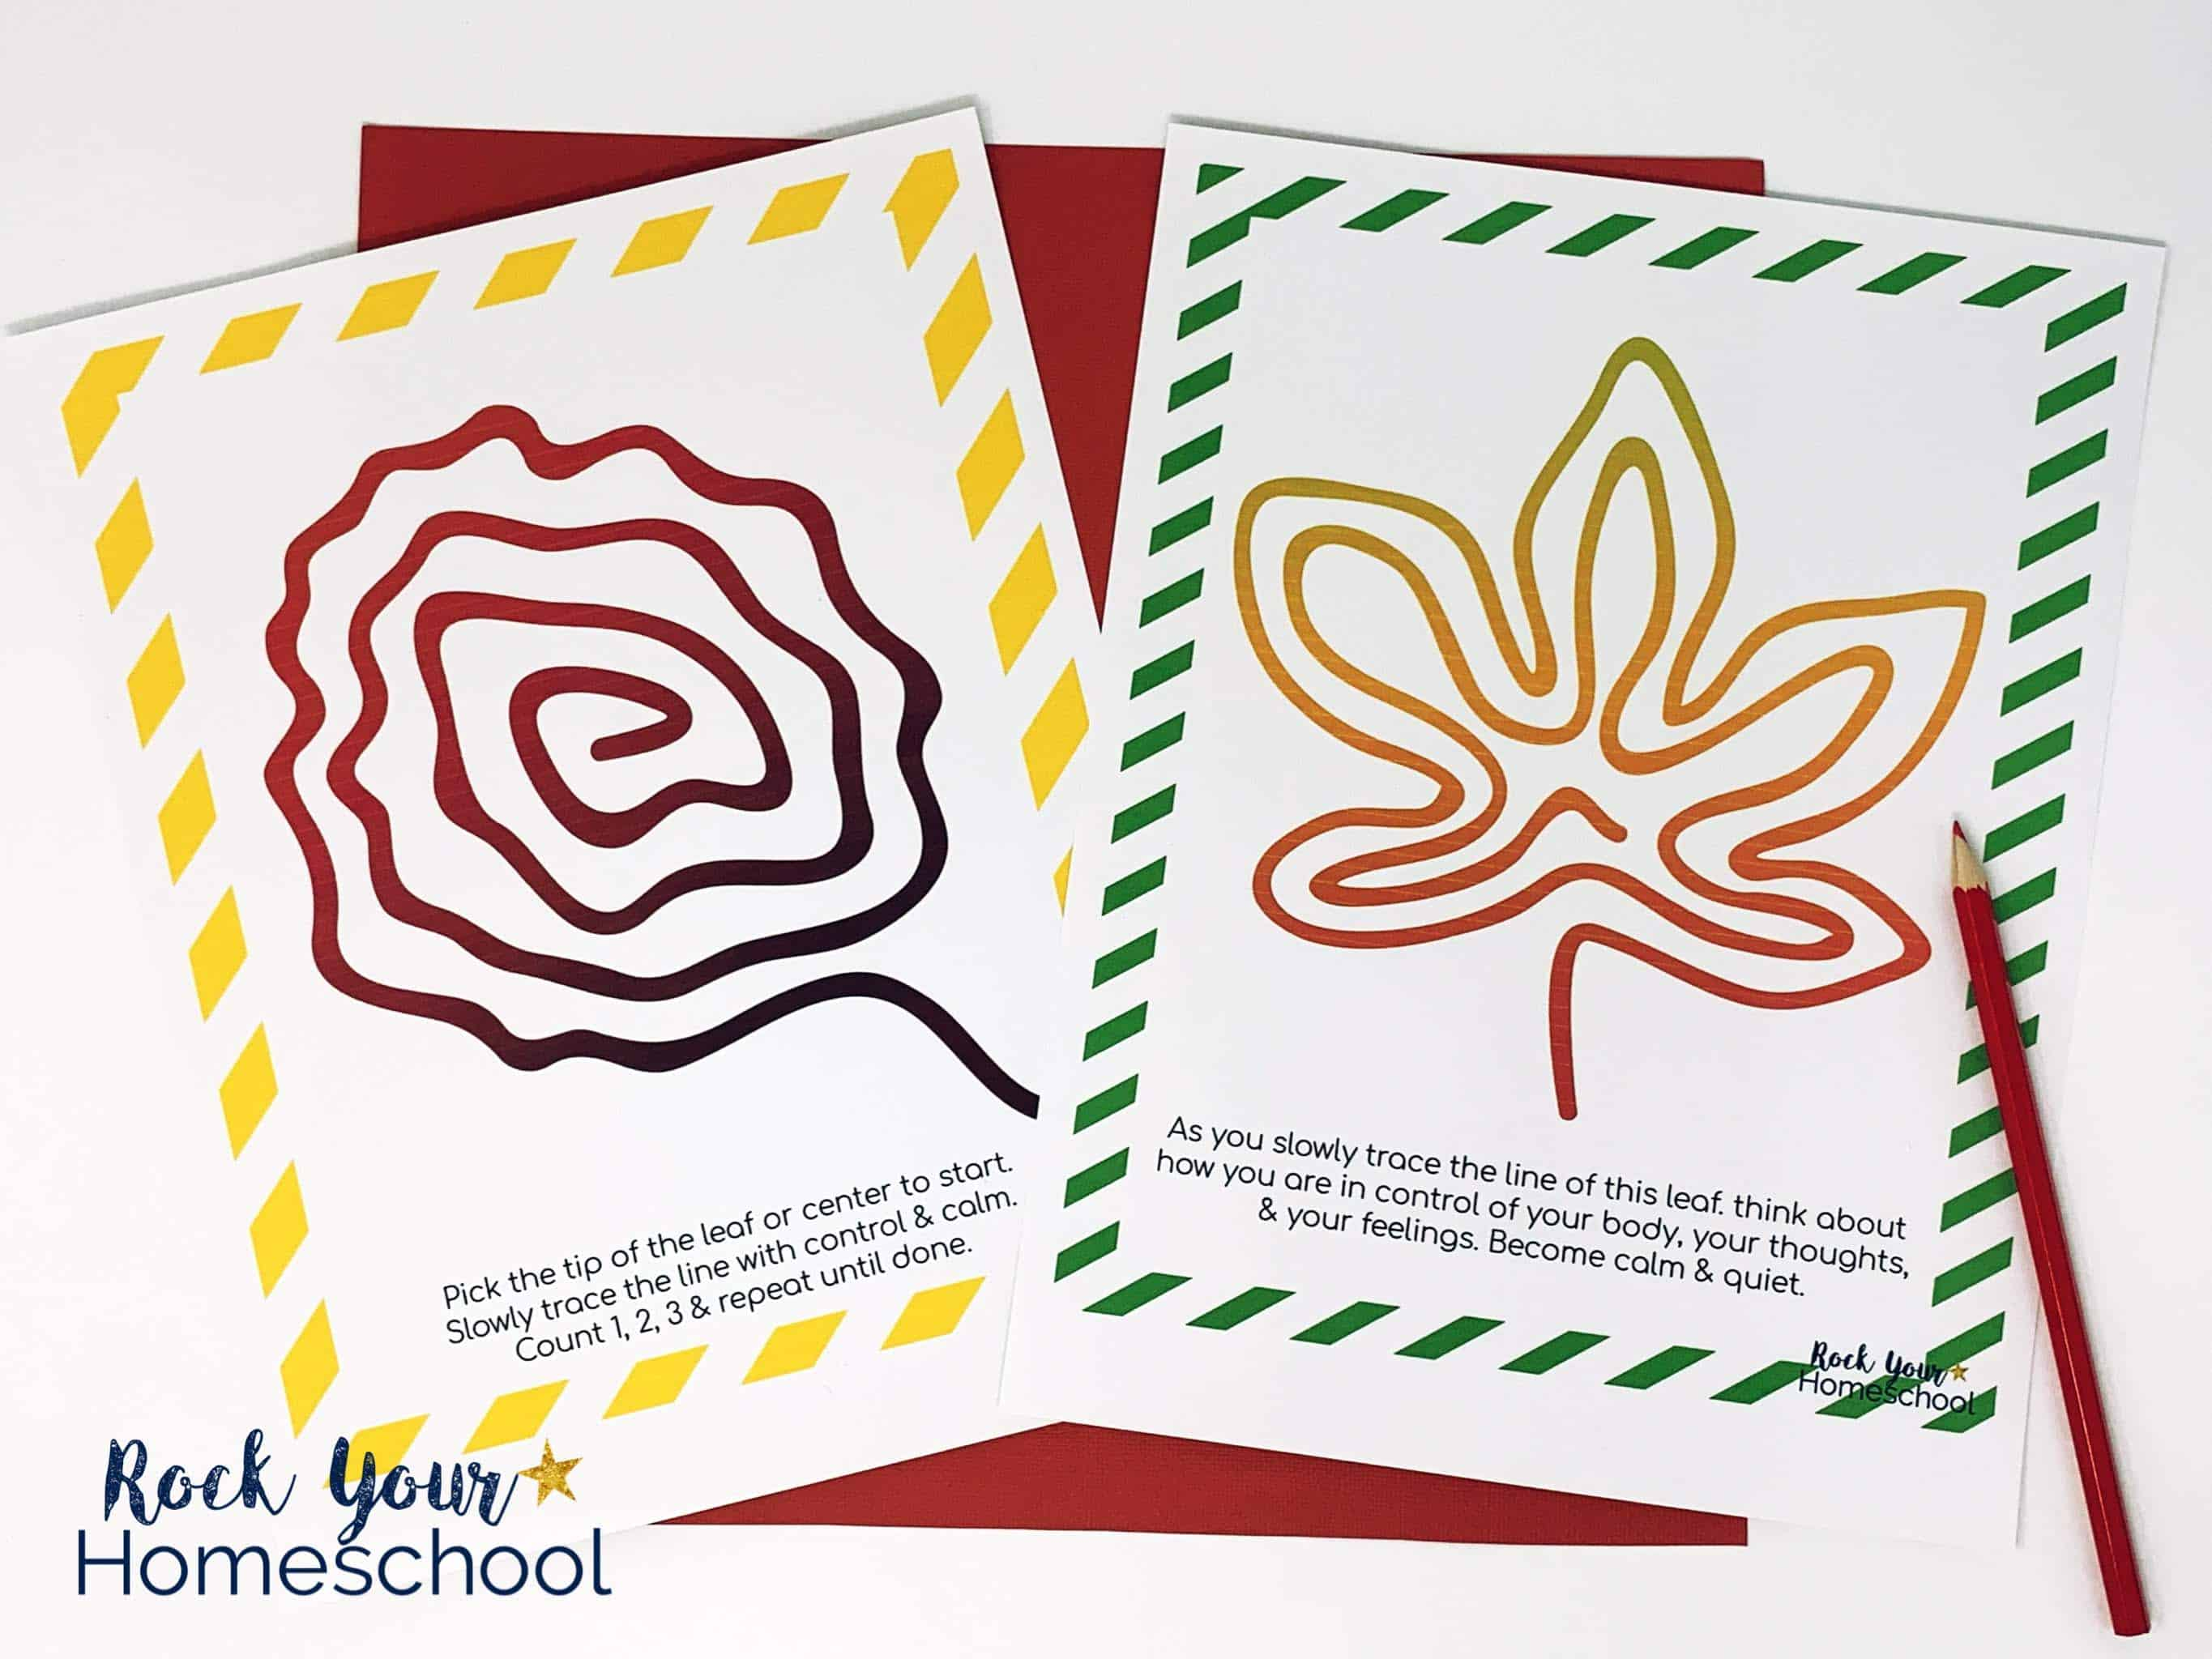 These free printable mindfulness activities for kids featuring Fall leaves are easy yet powerful practices to learn growth mindset skills.